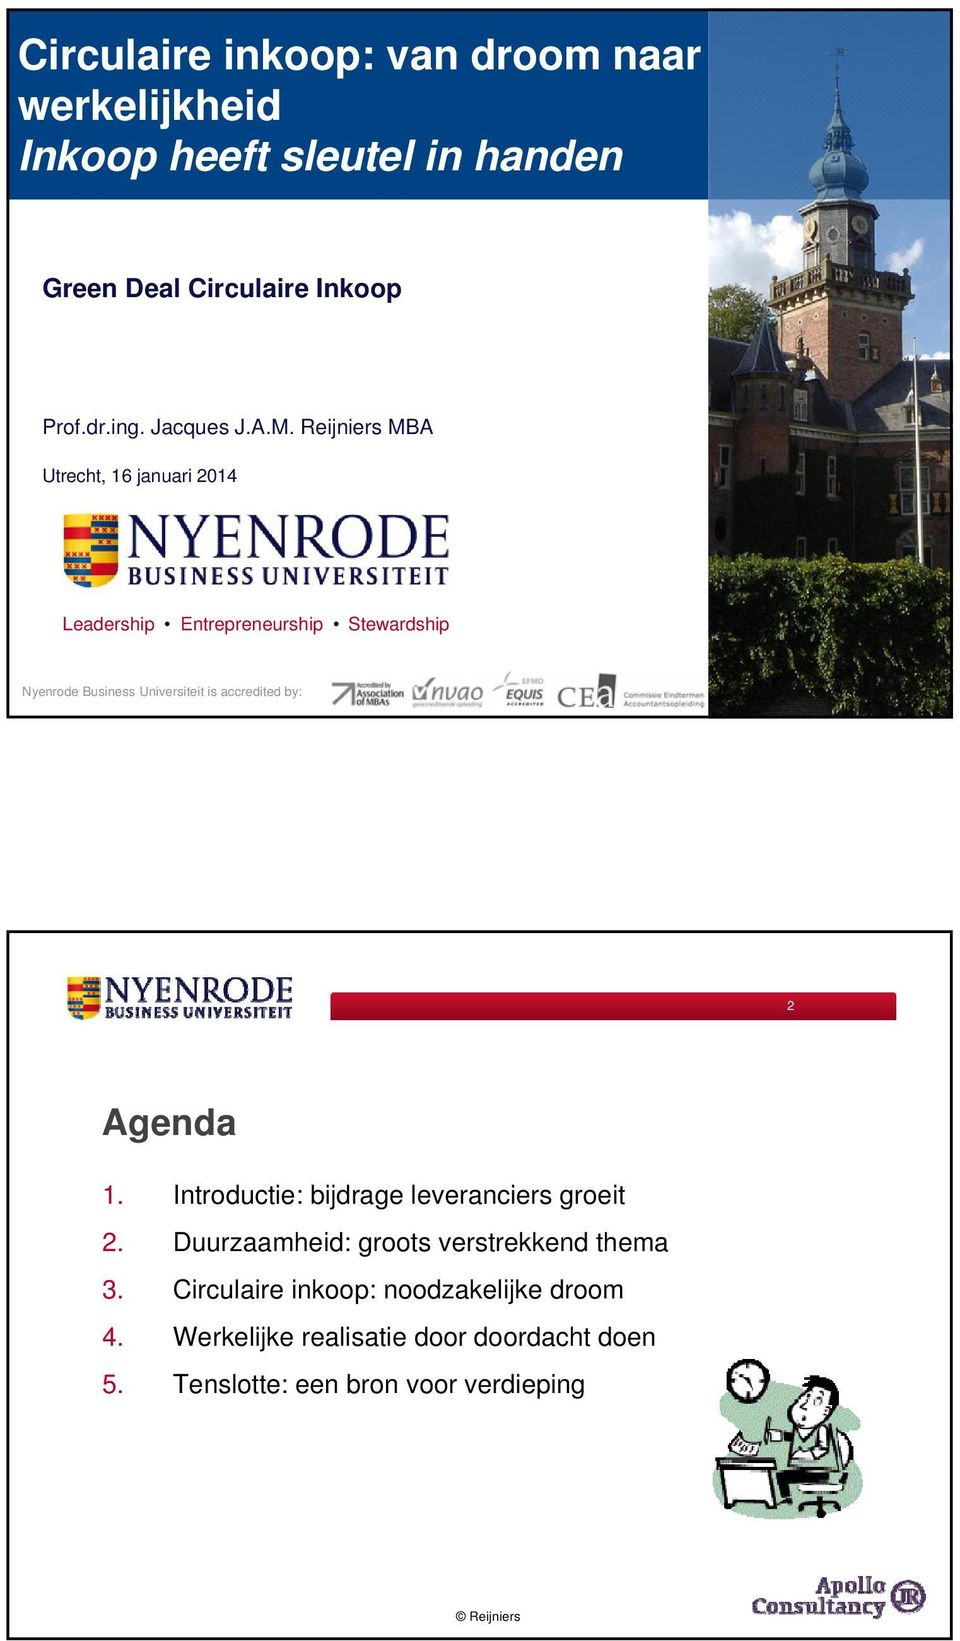 Reijniers MBA Utrecht, 16 januari 2014 Leadership Entrepreneurship Stewardship Nyenrode Business Universiteit is